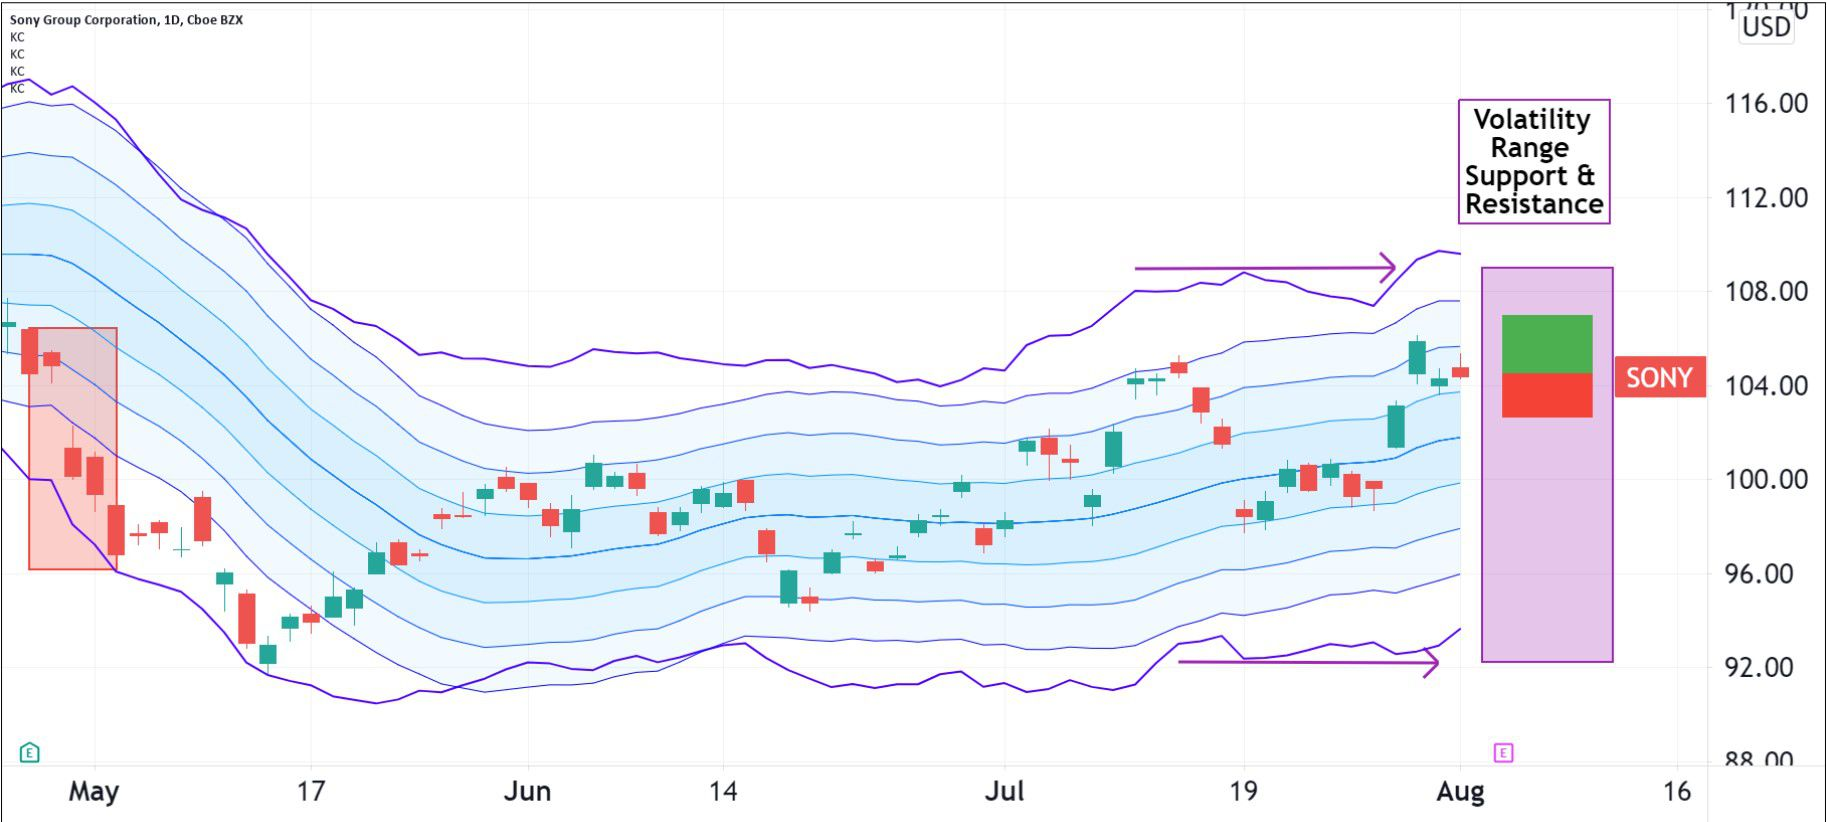 Volatility pattern for Sony Group Corporation (SONY)